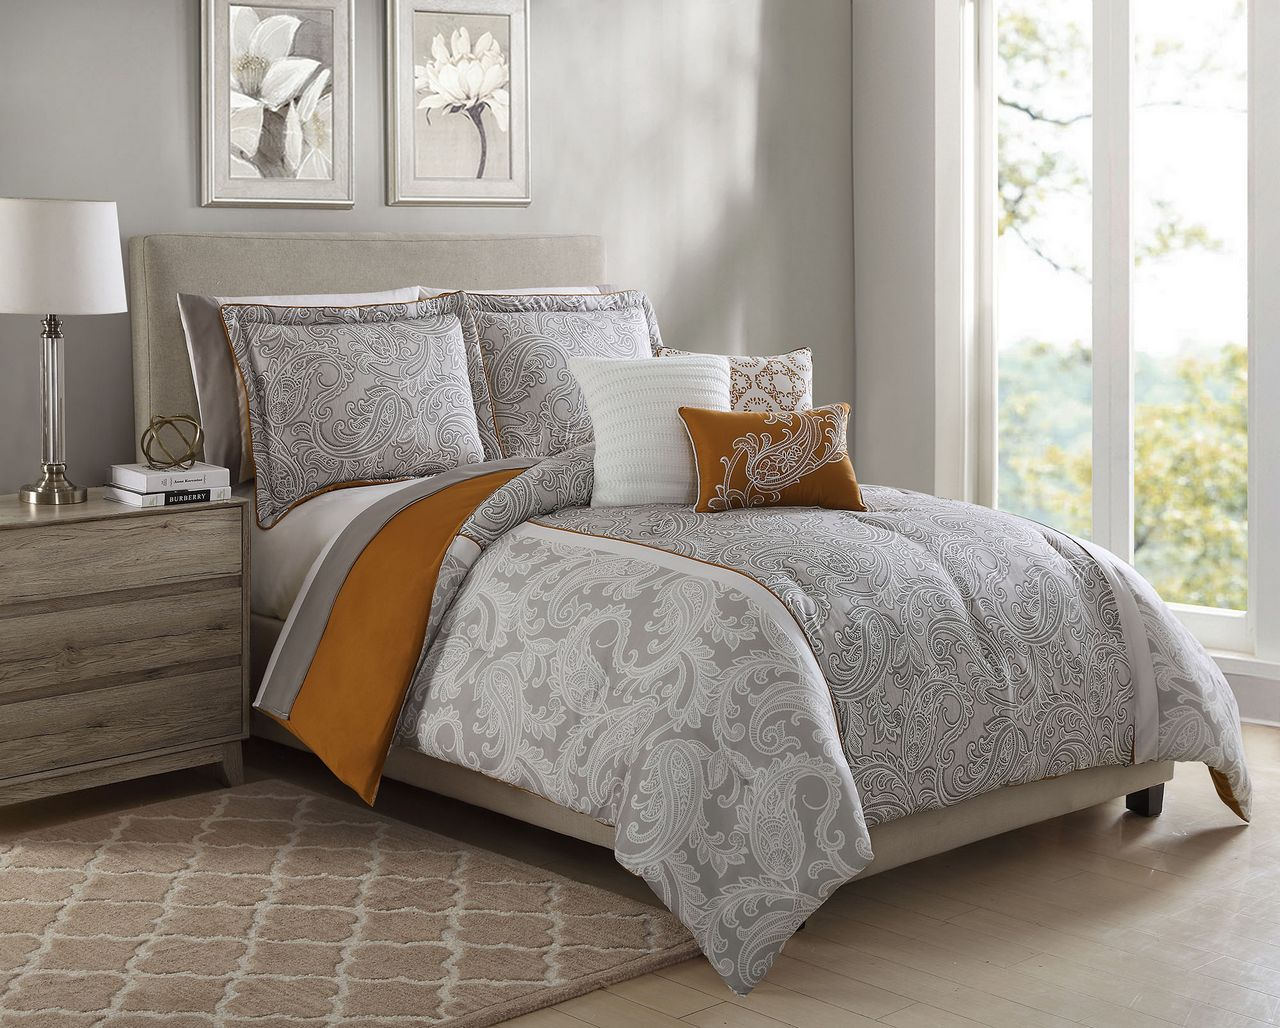 macysbedding sheets ideas and coral orange bedding bed cute set portico blue pin turquoise comforter grey